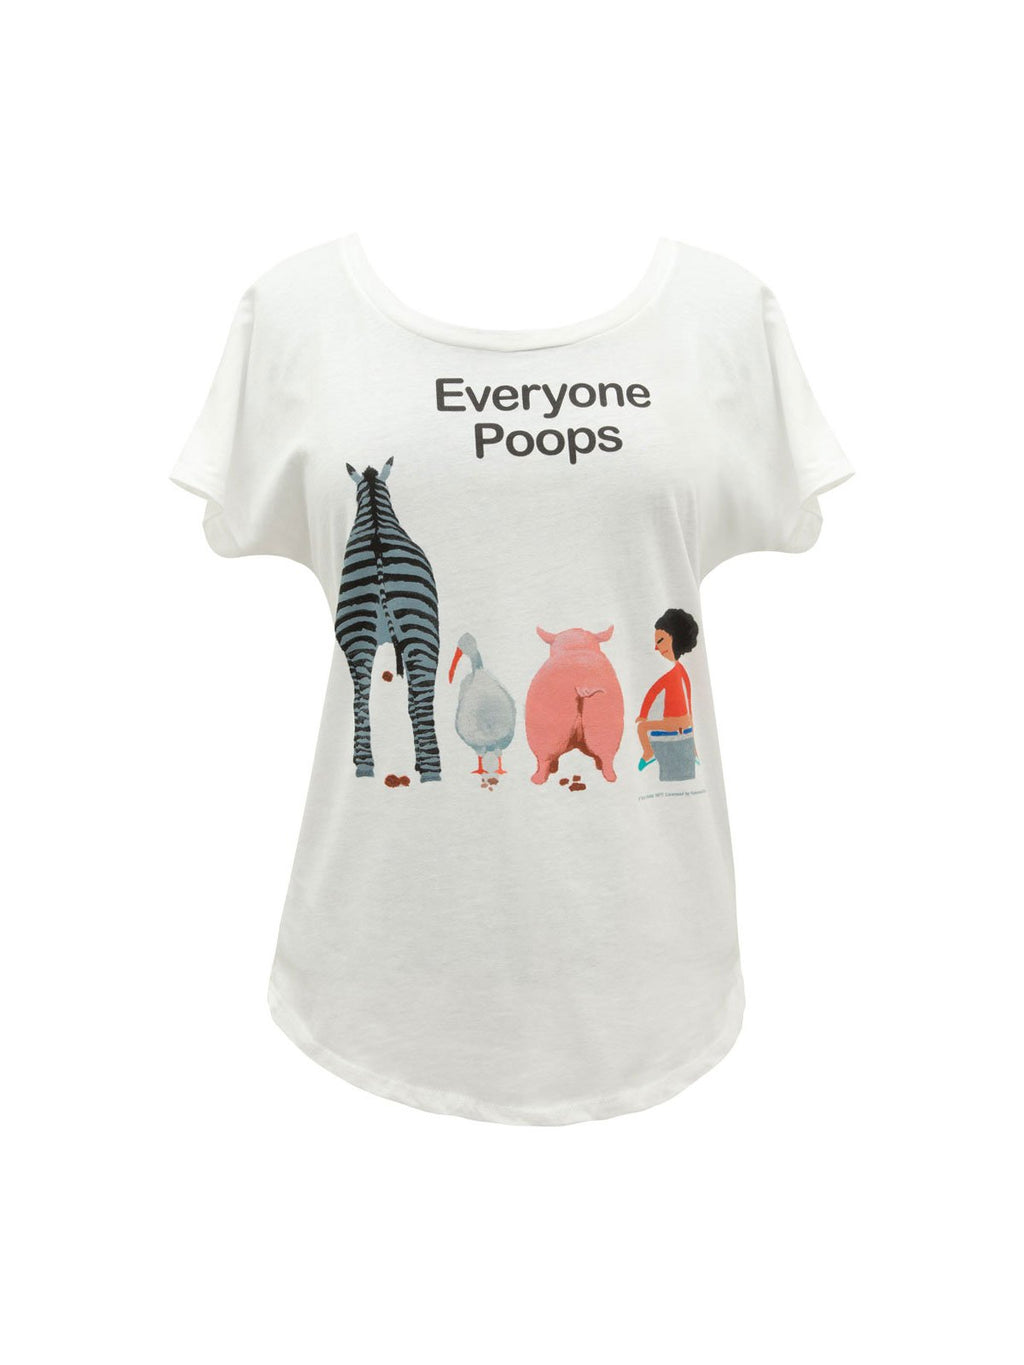 Everyone Poops Women's T-Shirt